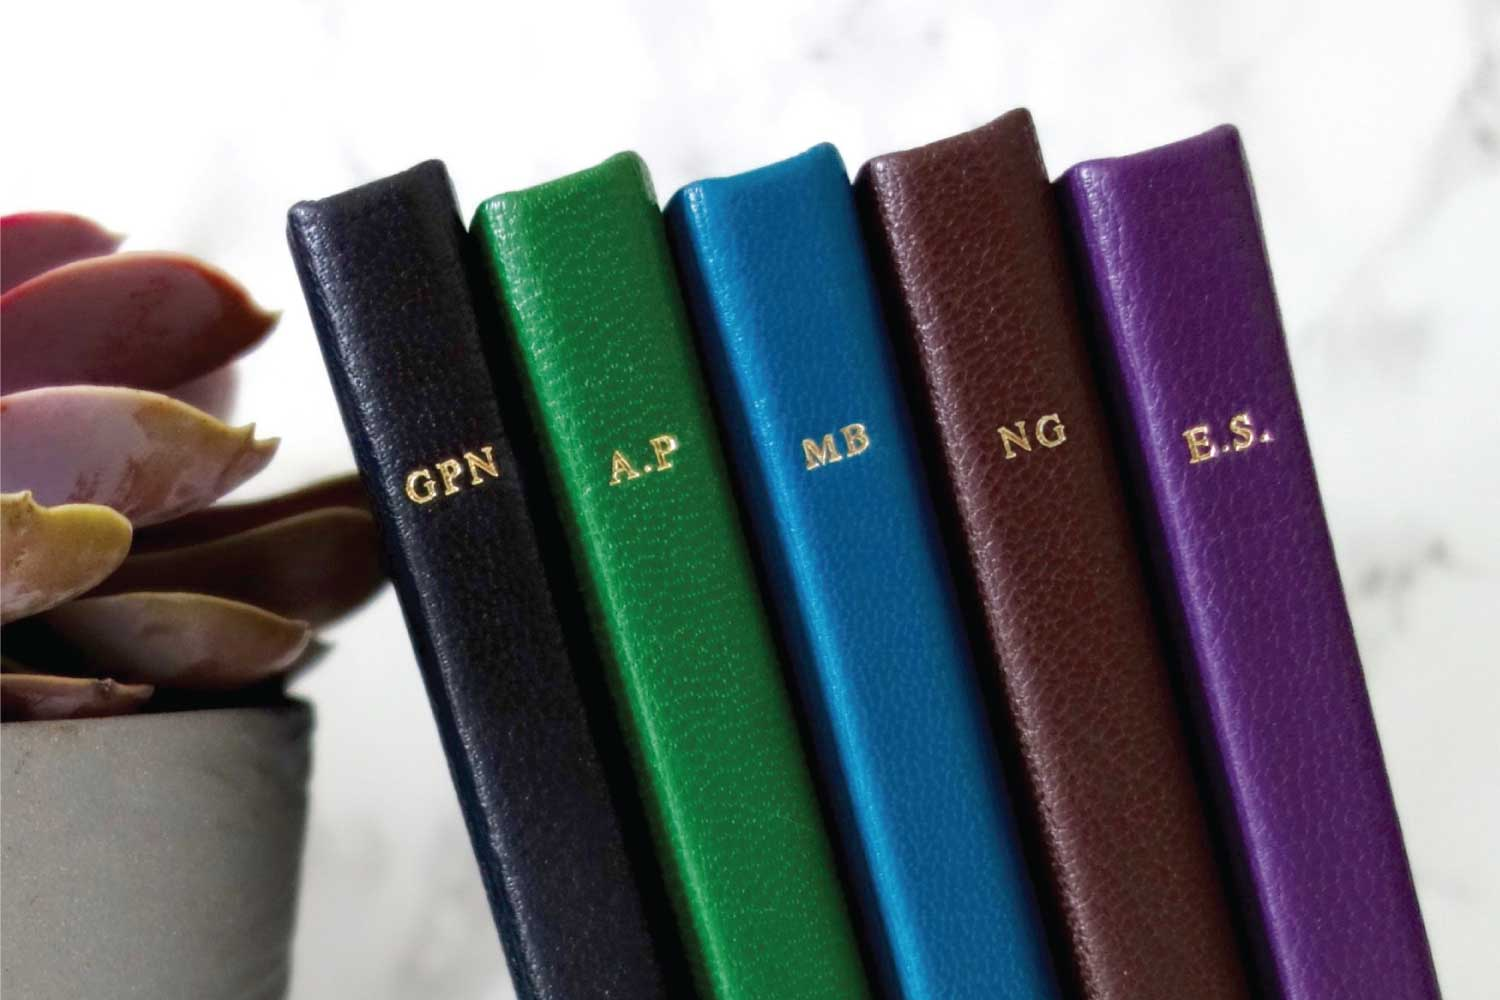 custom leather phone cases with personalised spine monograms